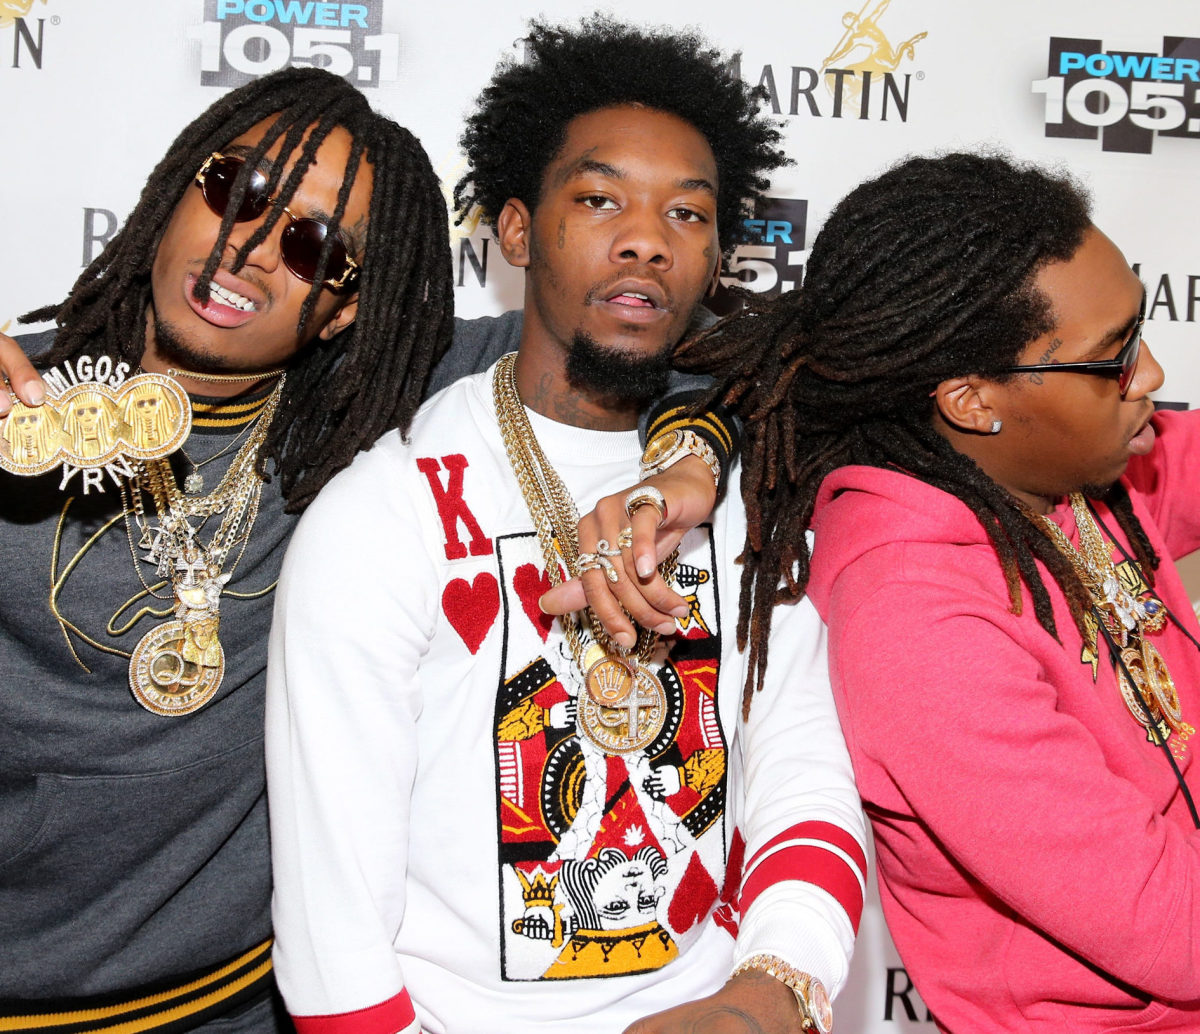 Left to Right: Quavo, Offset and Takeoff